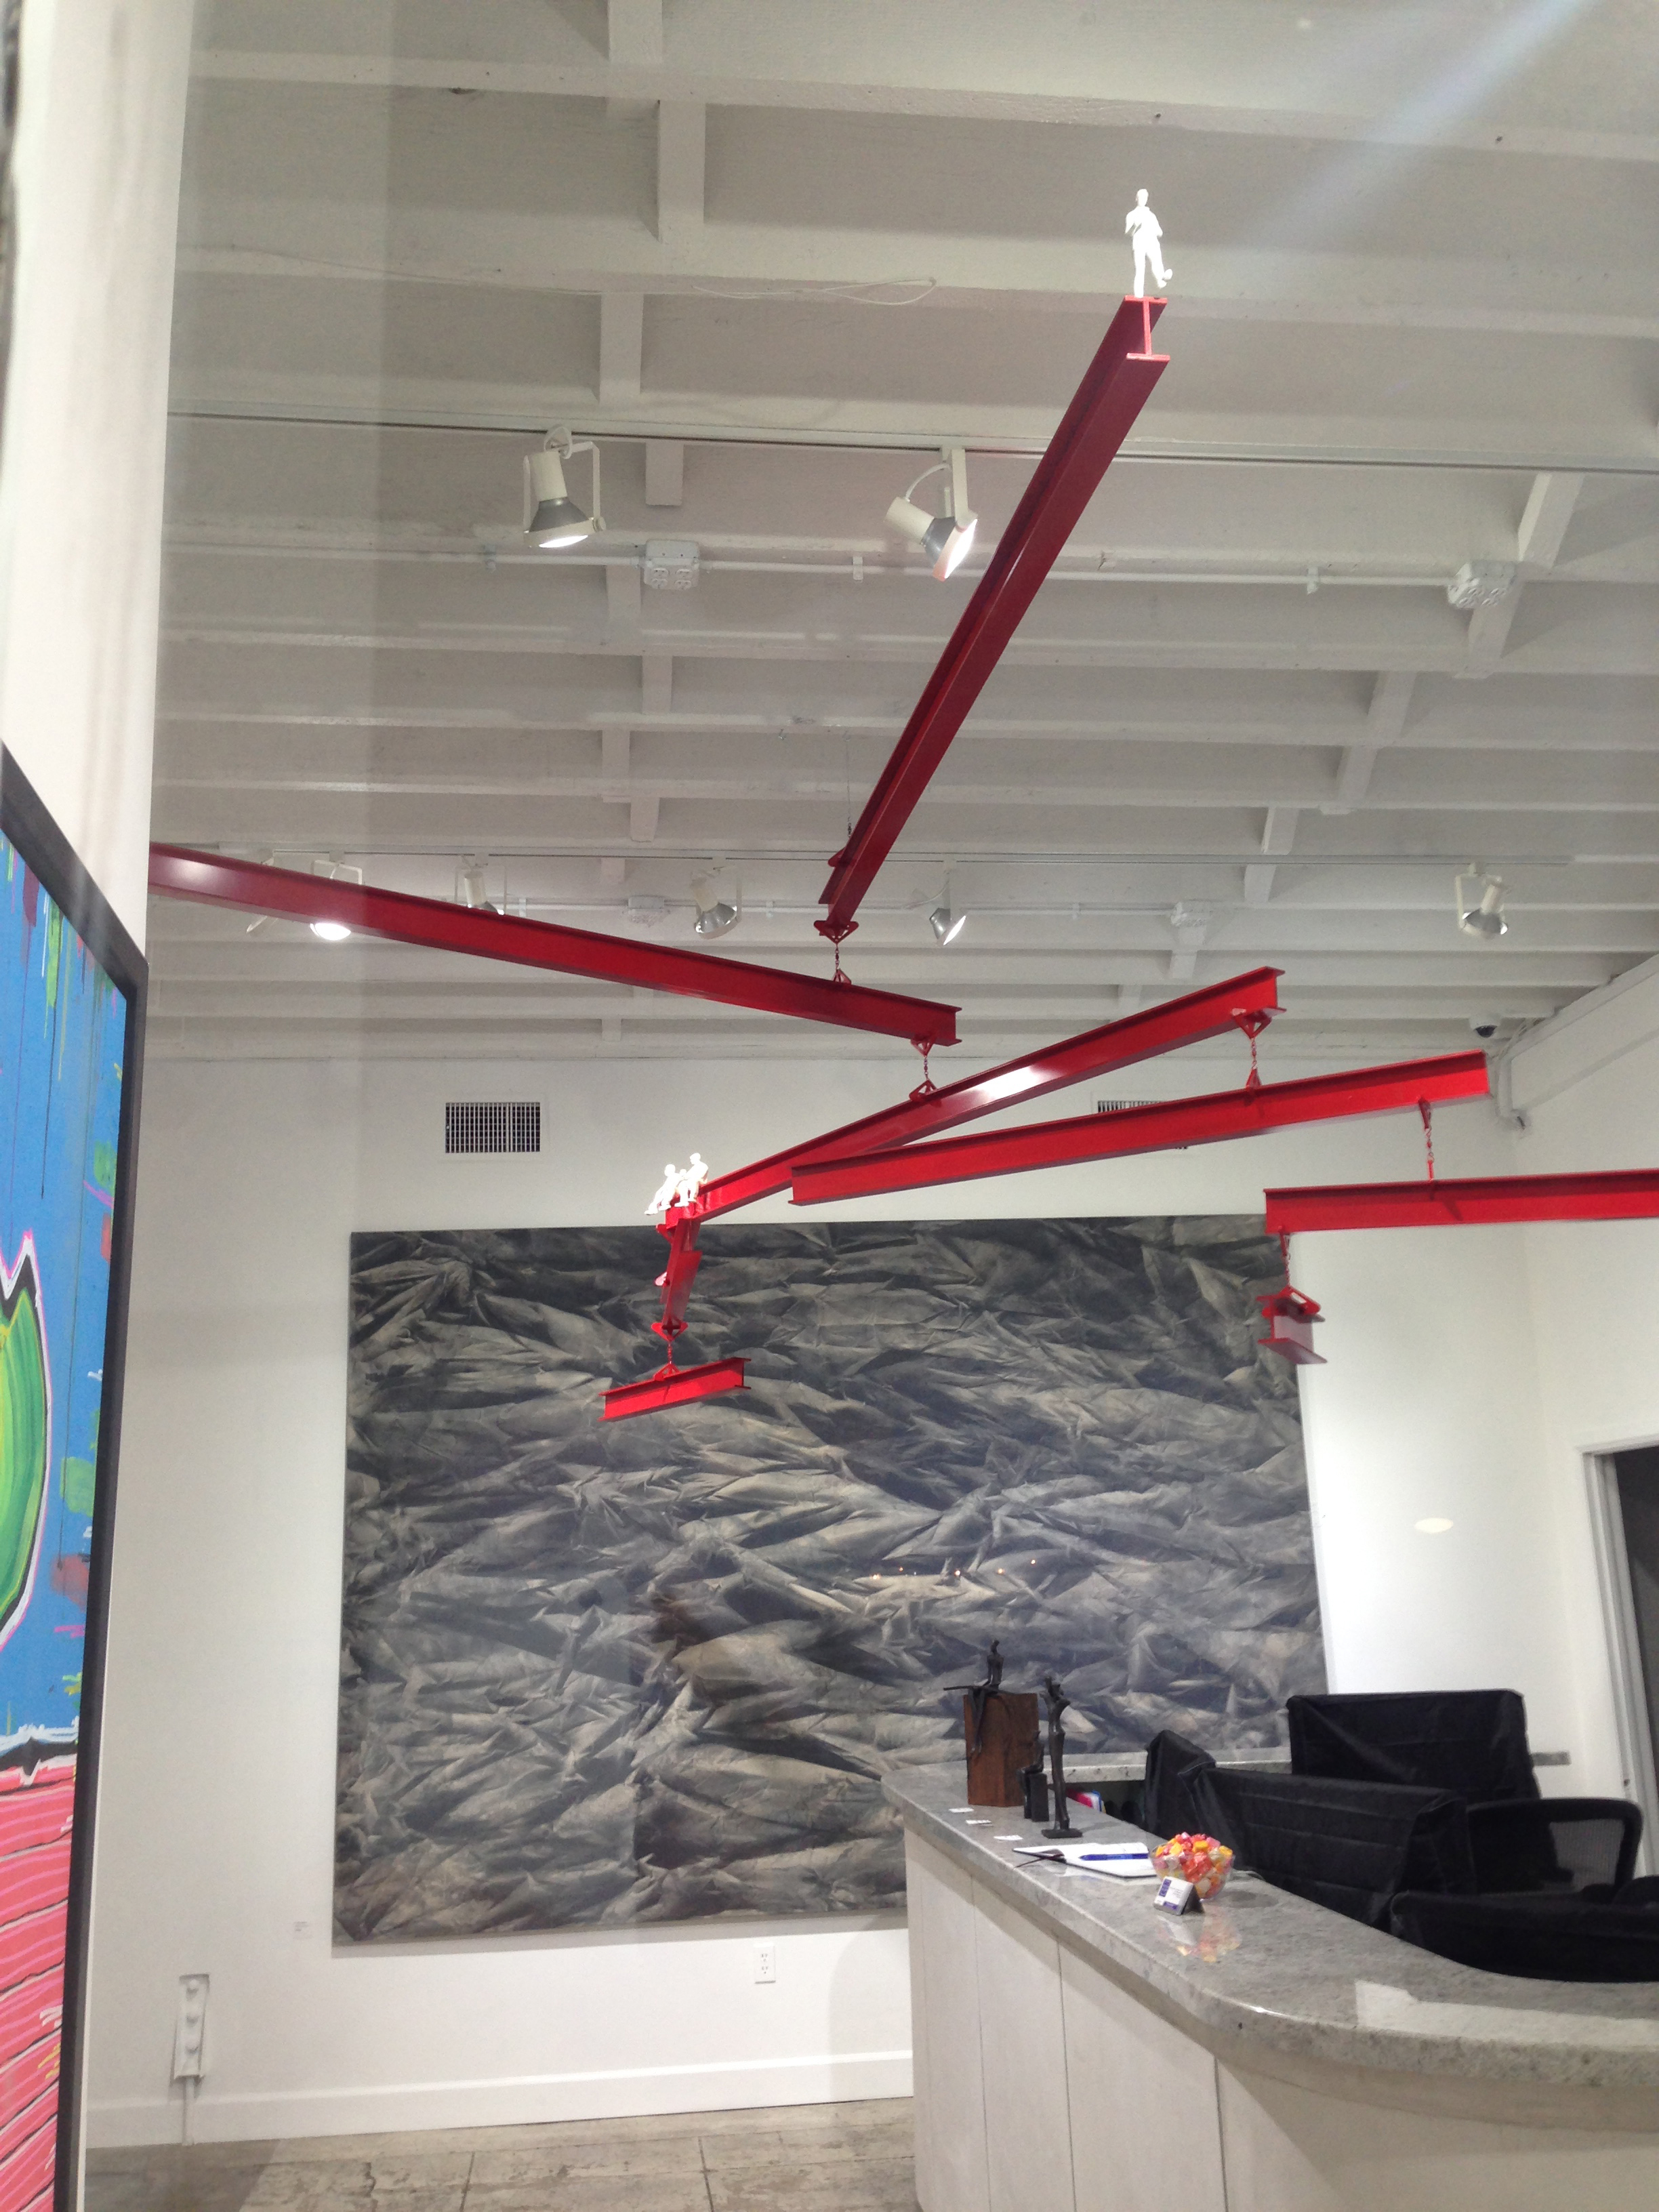 J F Jones kinetic art pieces use SINTRA graphic display board by 3A Composites.